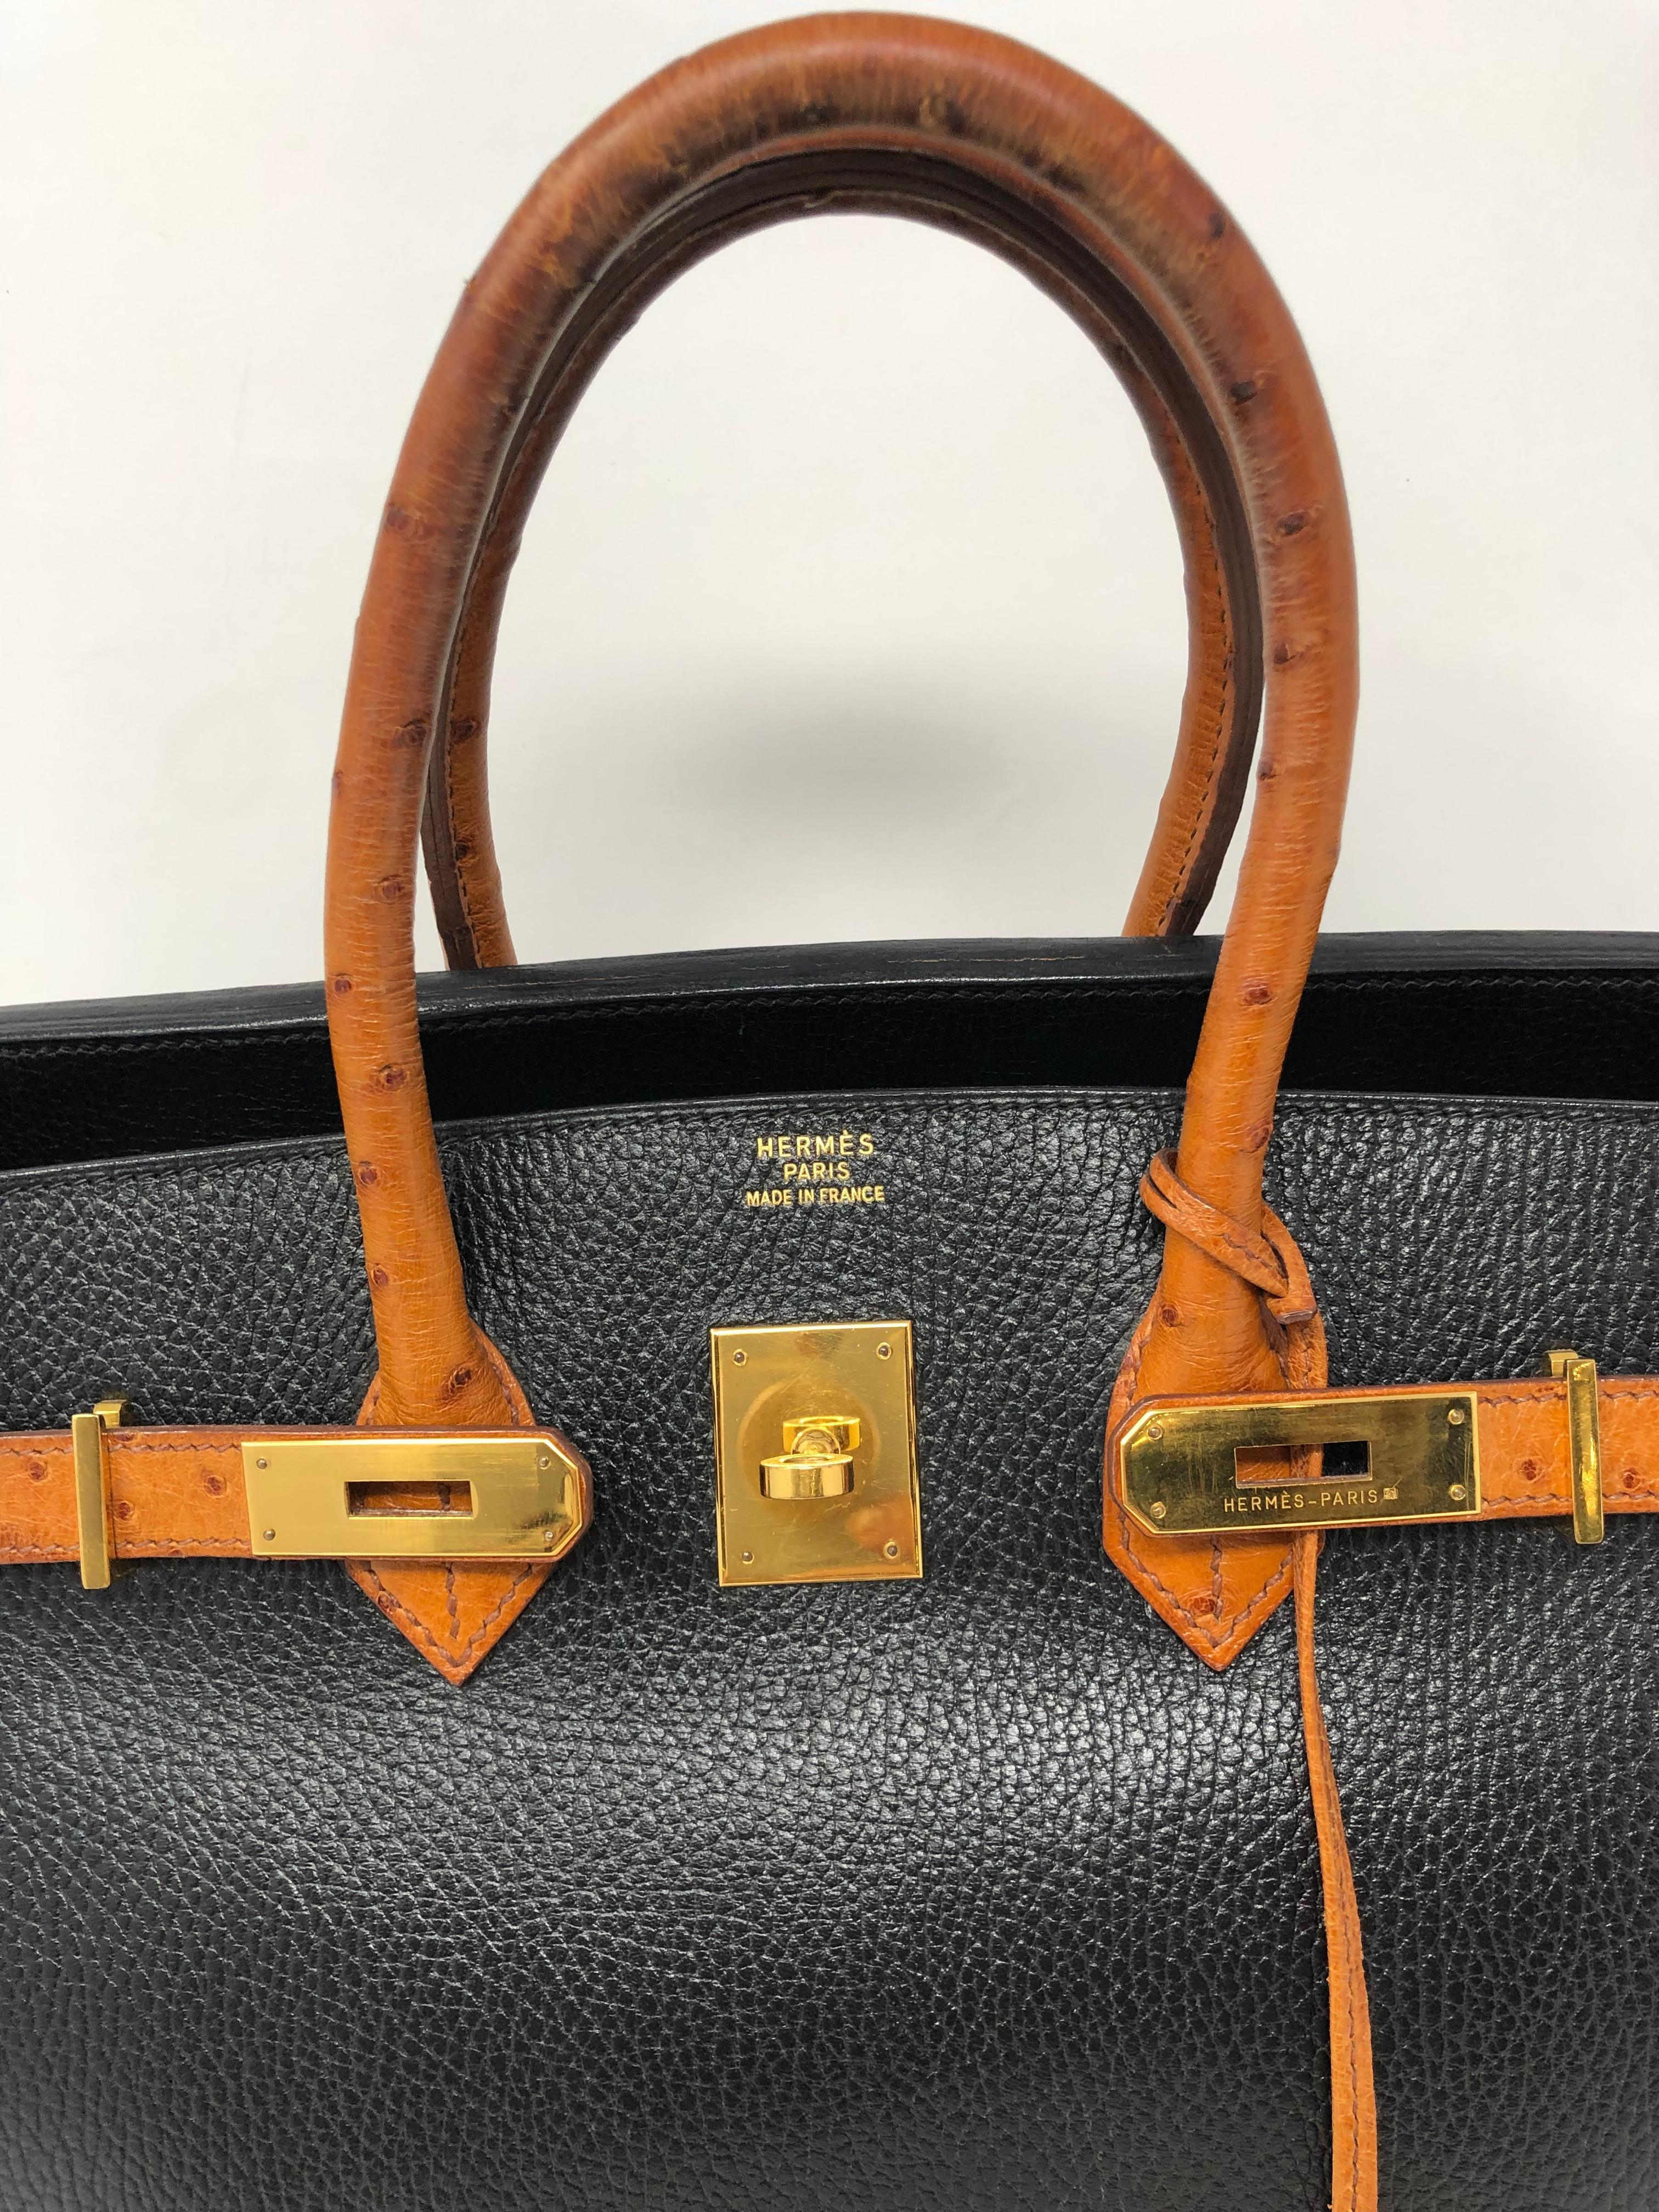 3b325206f720 Hermes Birkin 35 Black with Ostrich Leather Handles For Sale at 1stdibs